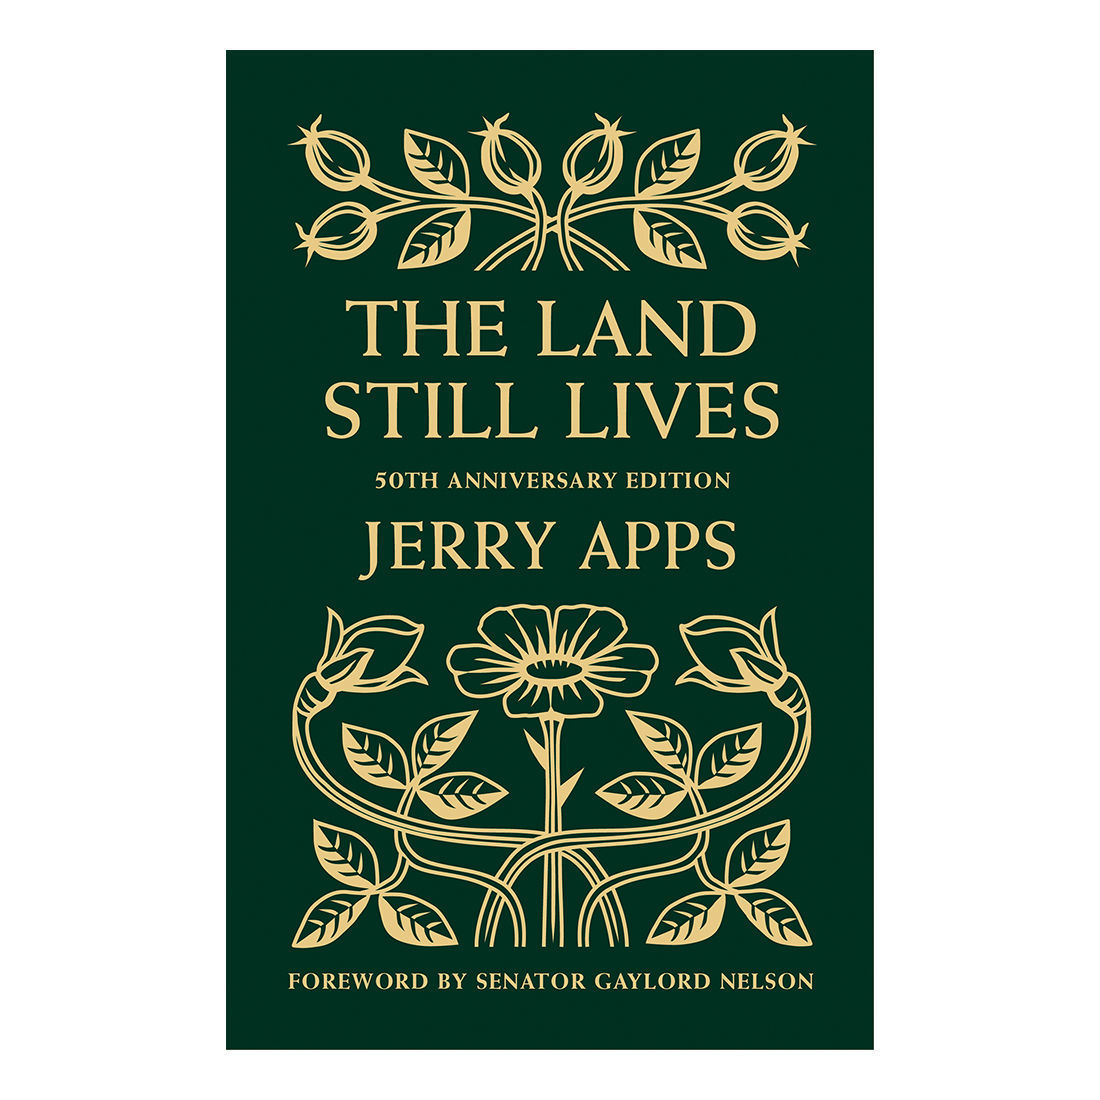 Jerry Apps' The Land Still Lives Book Cover